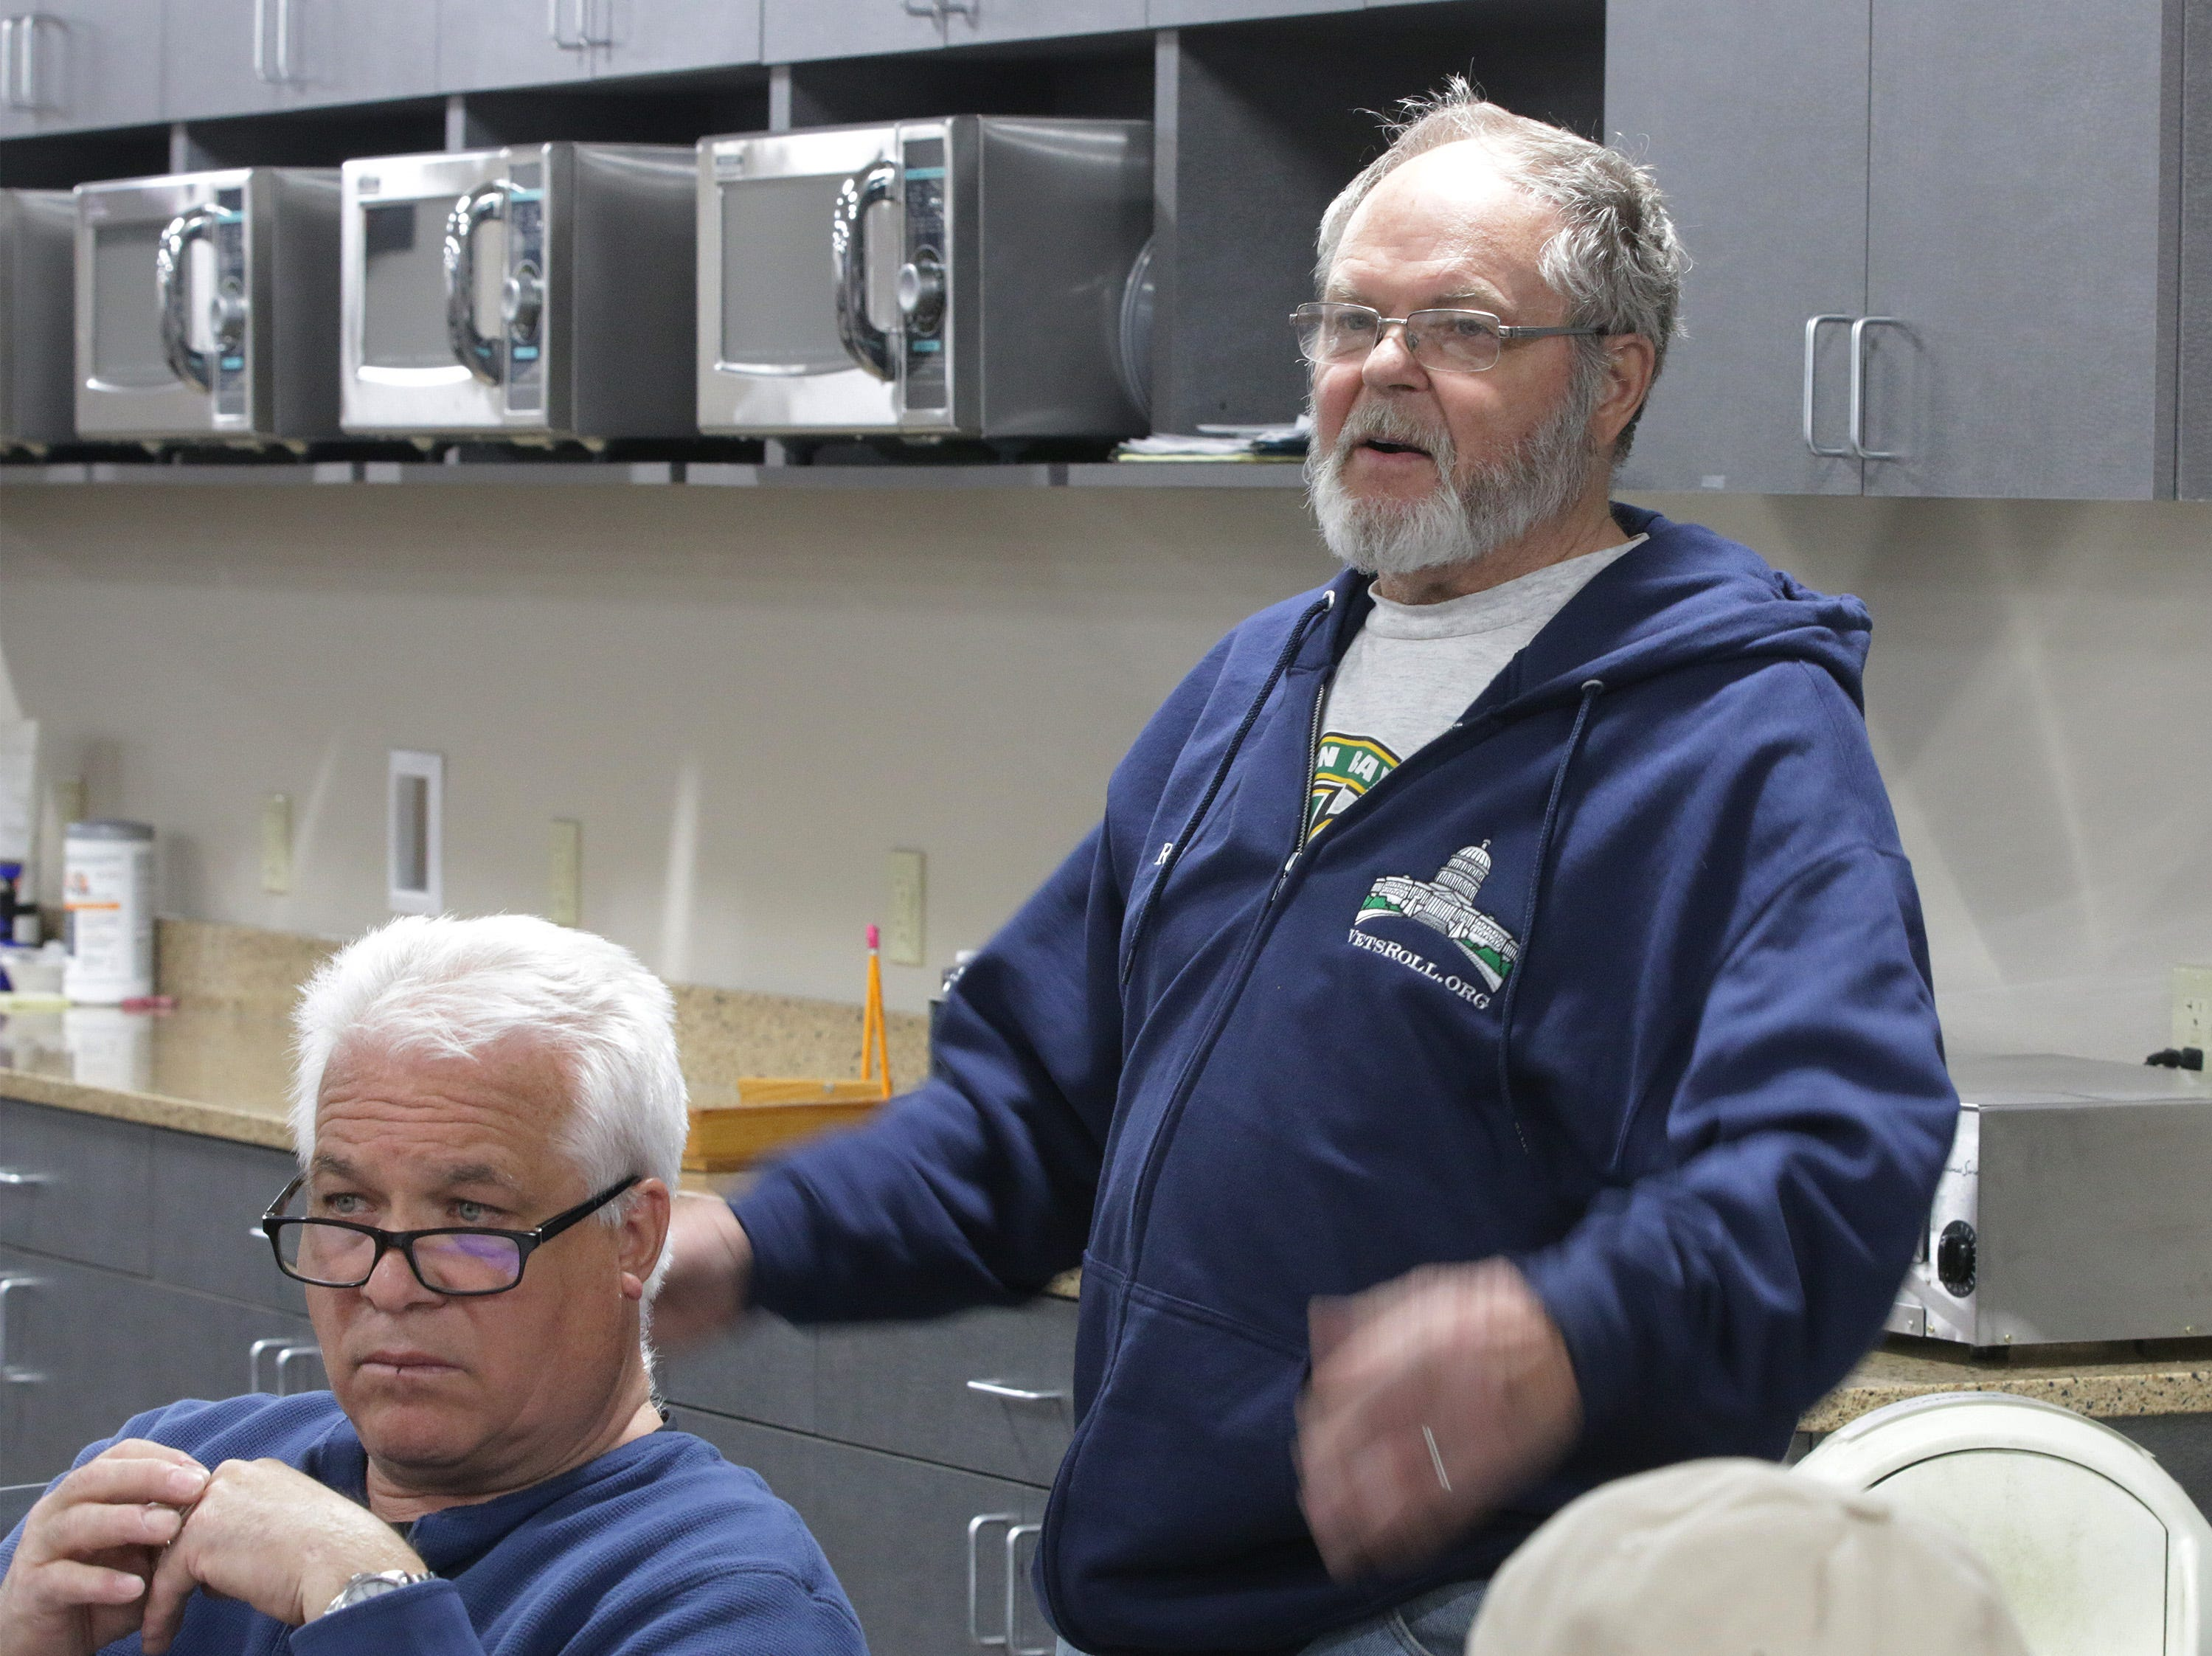 Roger Rortvedt of the Town of Plymouth wondered to DOT officials if enough attention has been paid in the planning on the ditches for the State Highway 23 four-lane expansion plans, Thursday, May 9, 2019, in Plymouth, Wis.